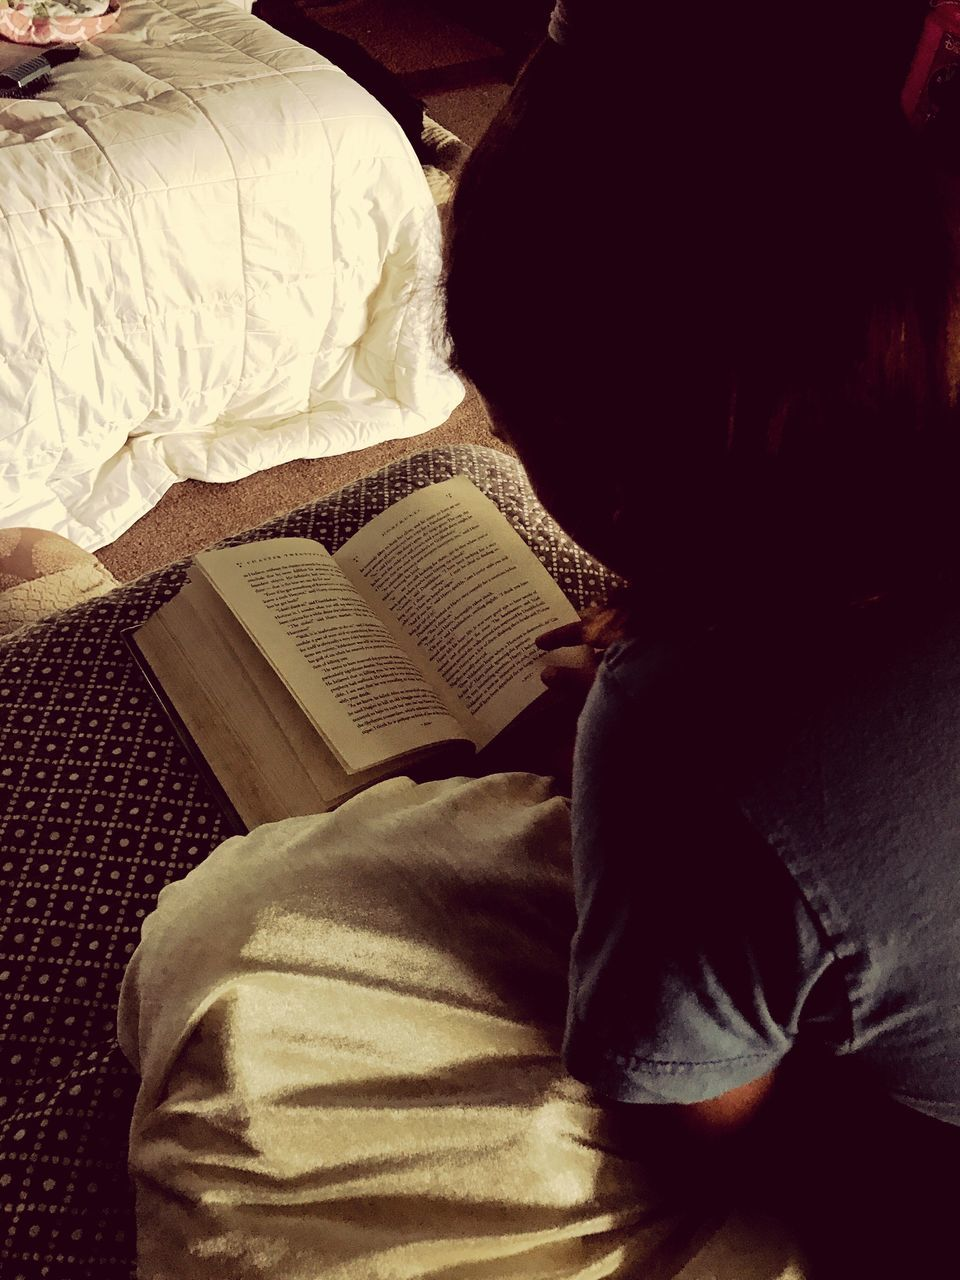 book, indoors, real people, sitting, bed, newspaper, men, day, close-up, one person, people